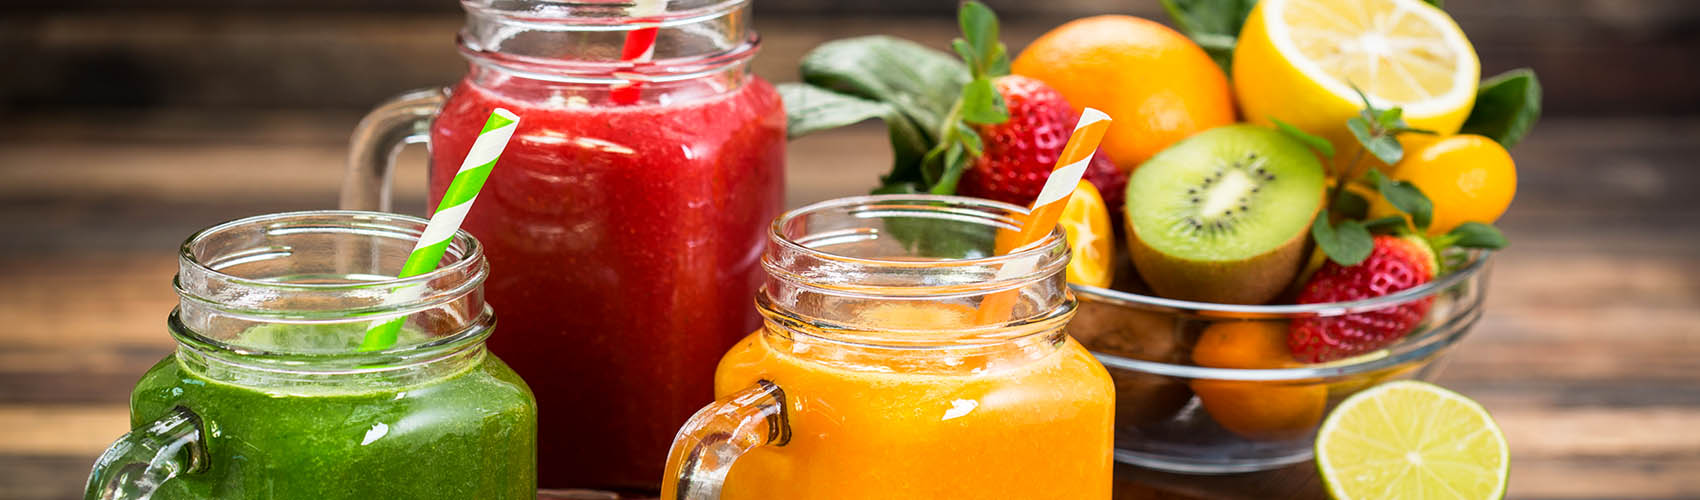 How to Make Home Made Healthy Energy Drinks